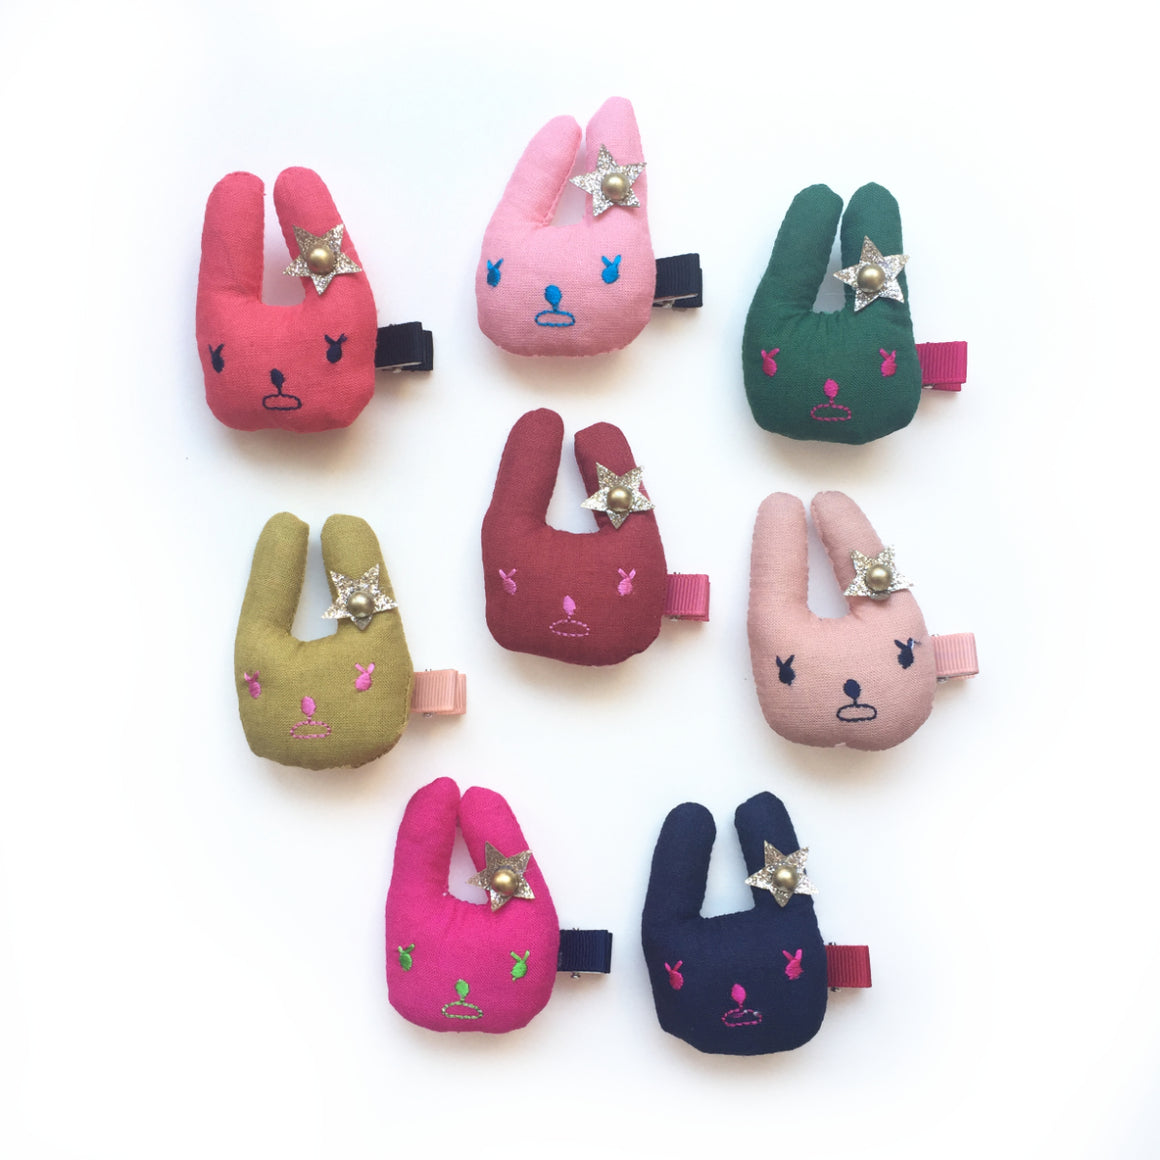 fabric bunny clips // hello shiso hair accessories for girls